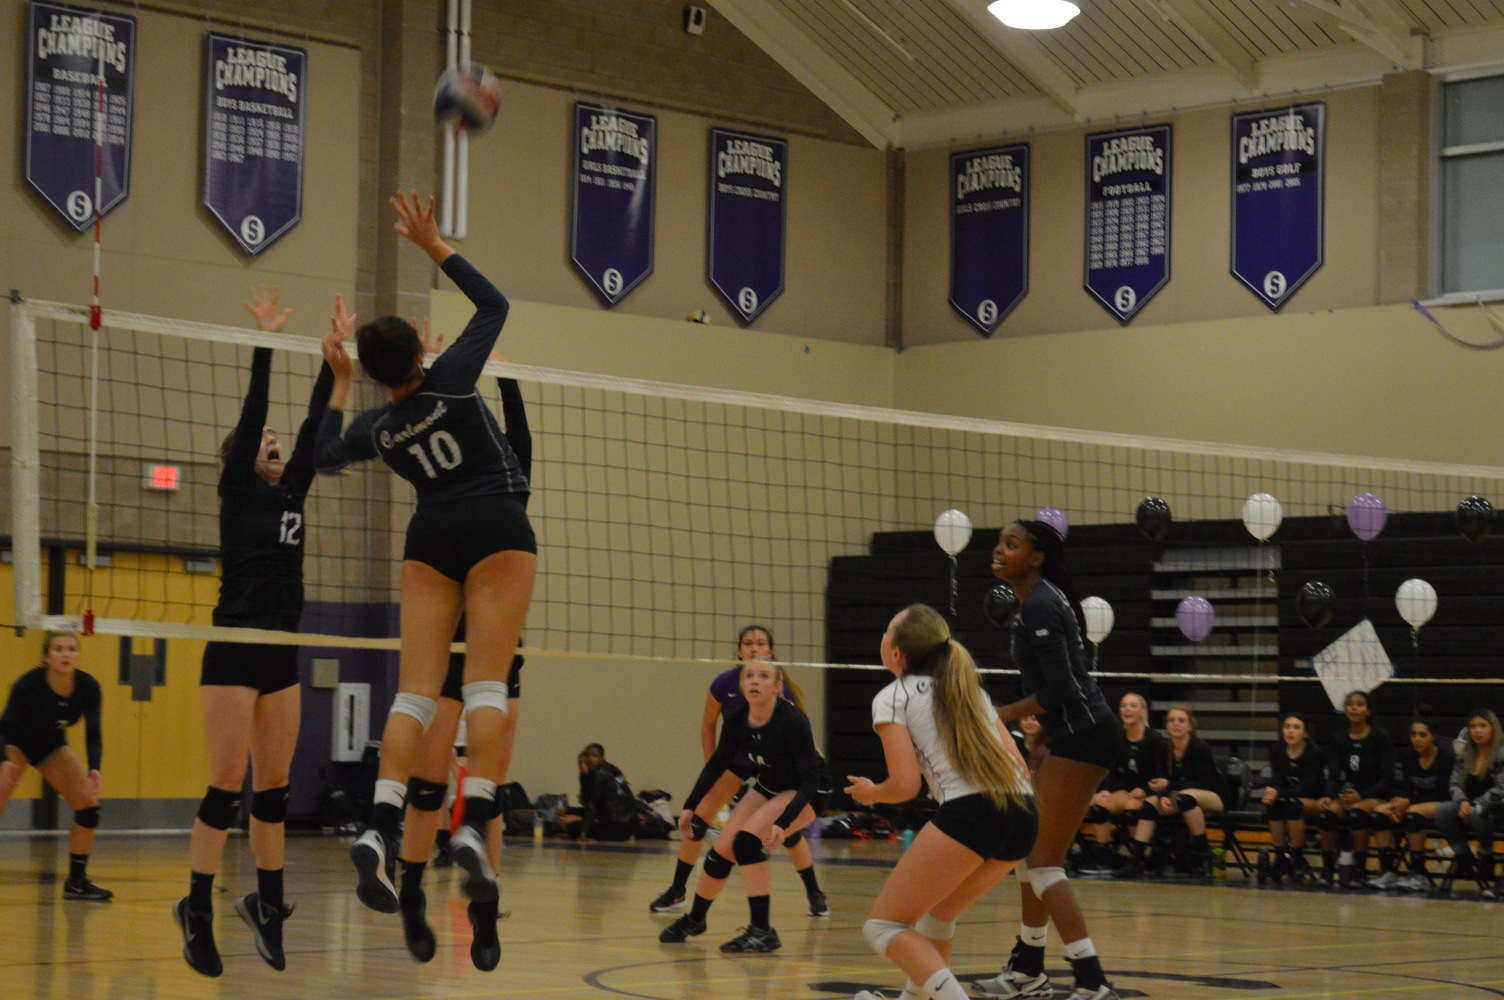 Junior Maya McClellan spikes the ball over the net earning points for the Scots.